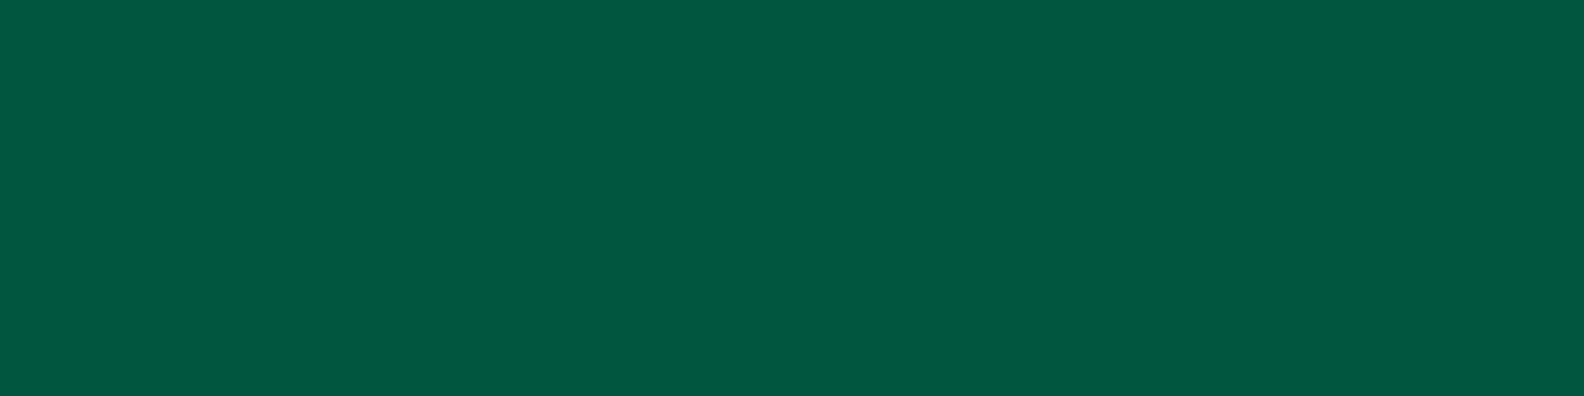 1584x396 Sacramento State Green Solid Color Background